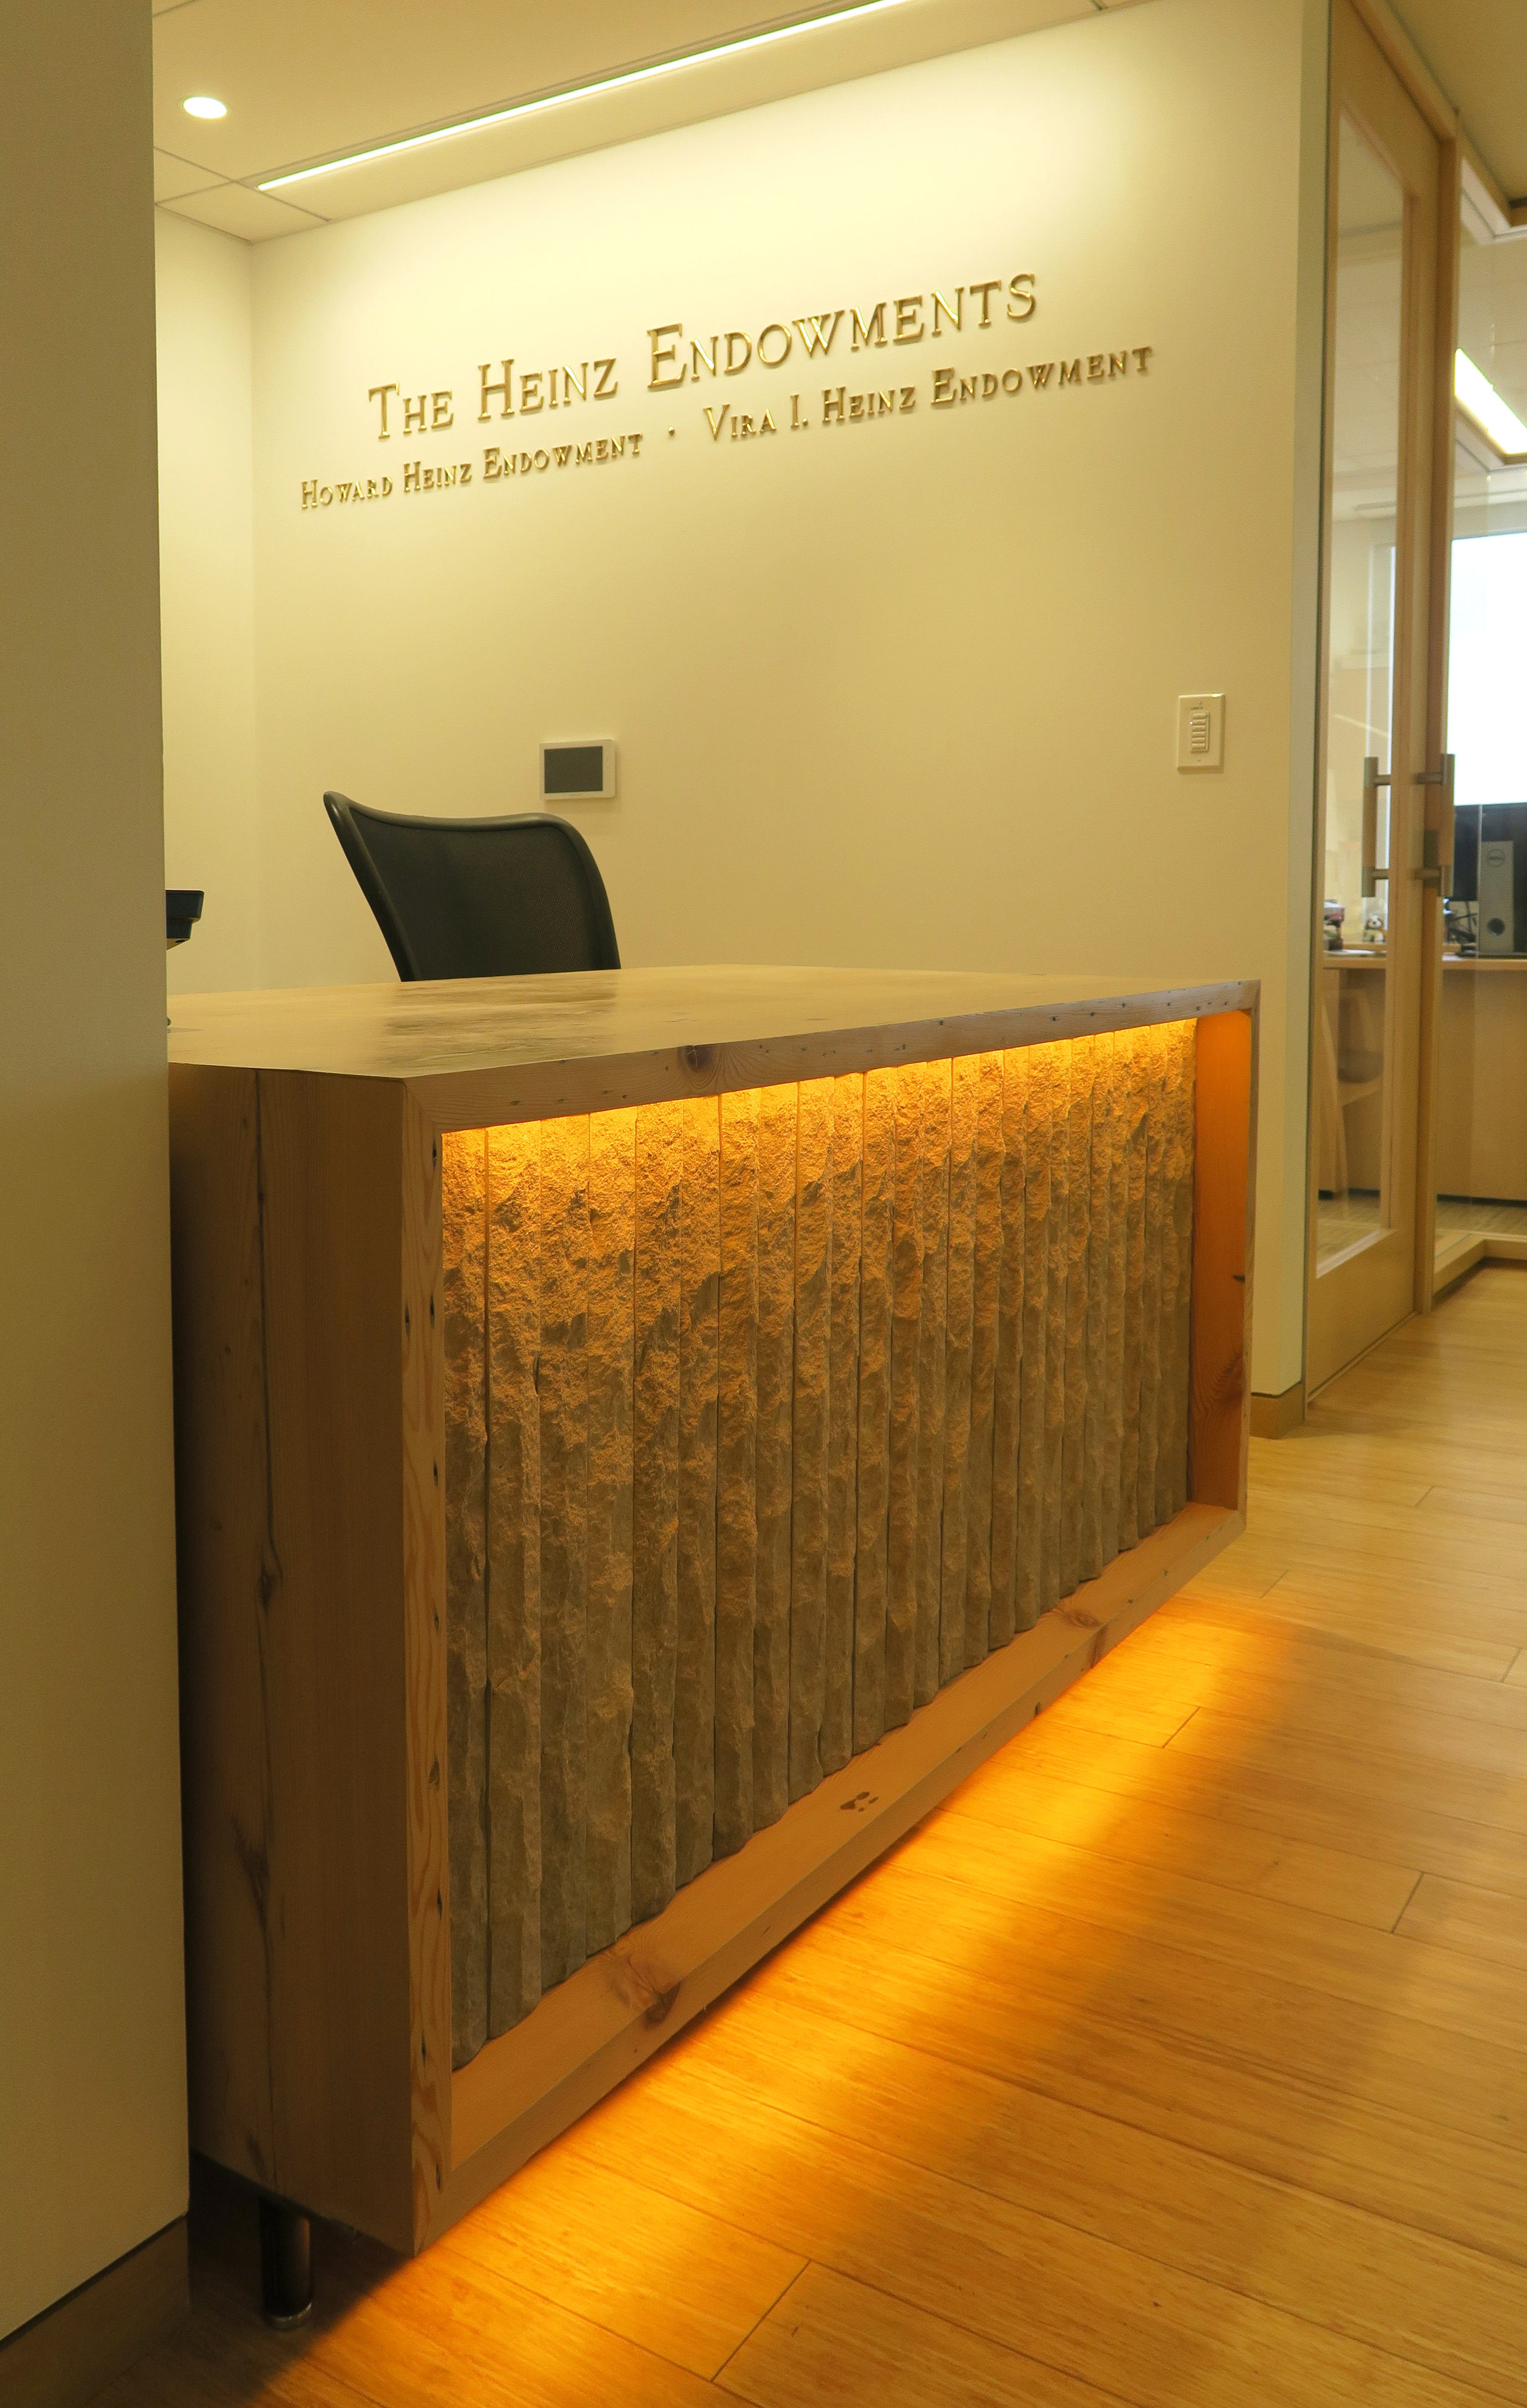 Reception desk is made of chiseled overstock limestone and reclaimed lumber deconstructed from an 1870's lodge